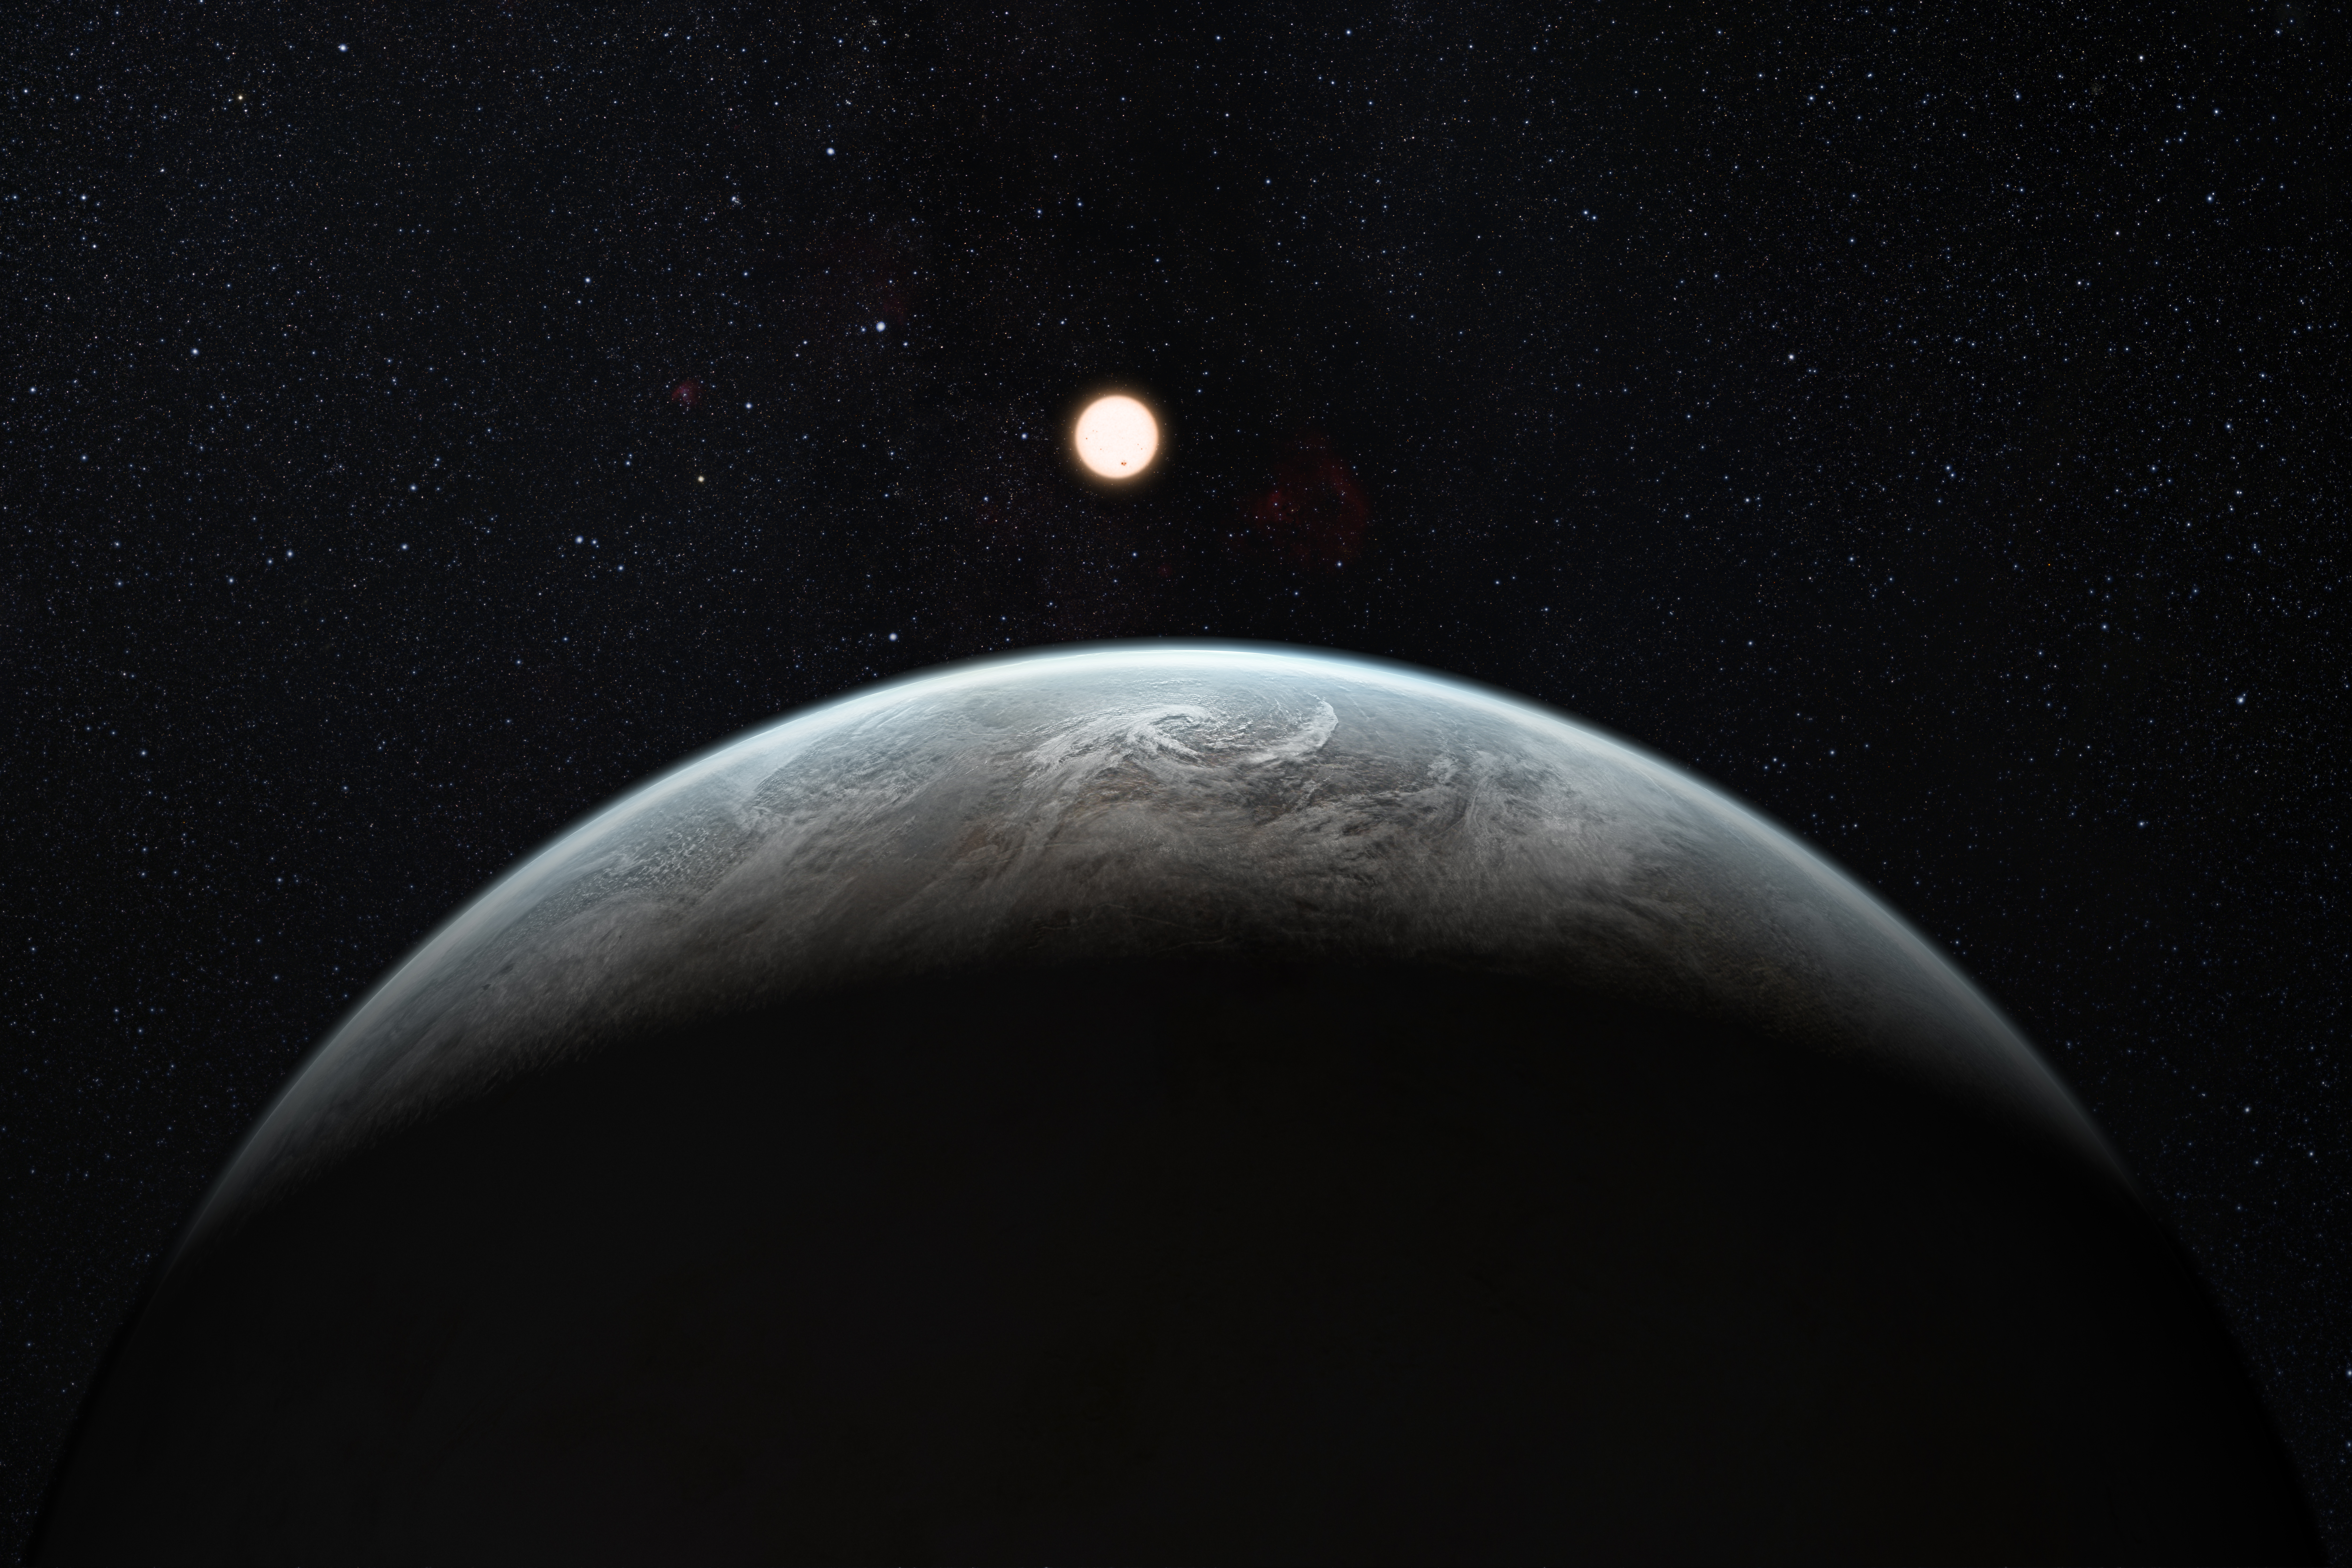 Searching for Earth 2.0 and other exoplanets